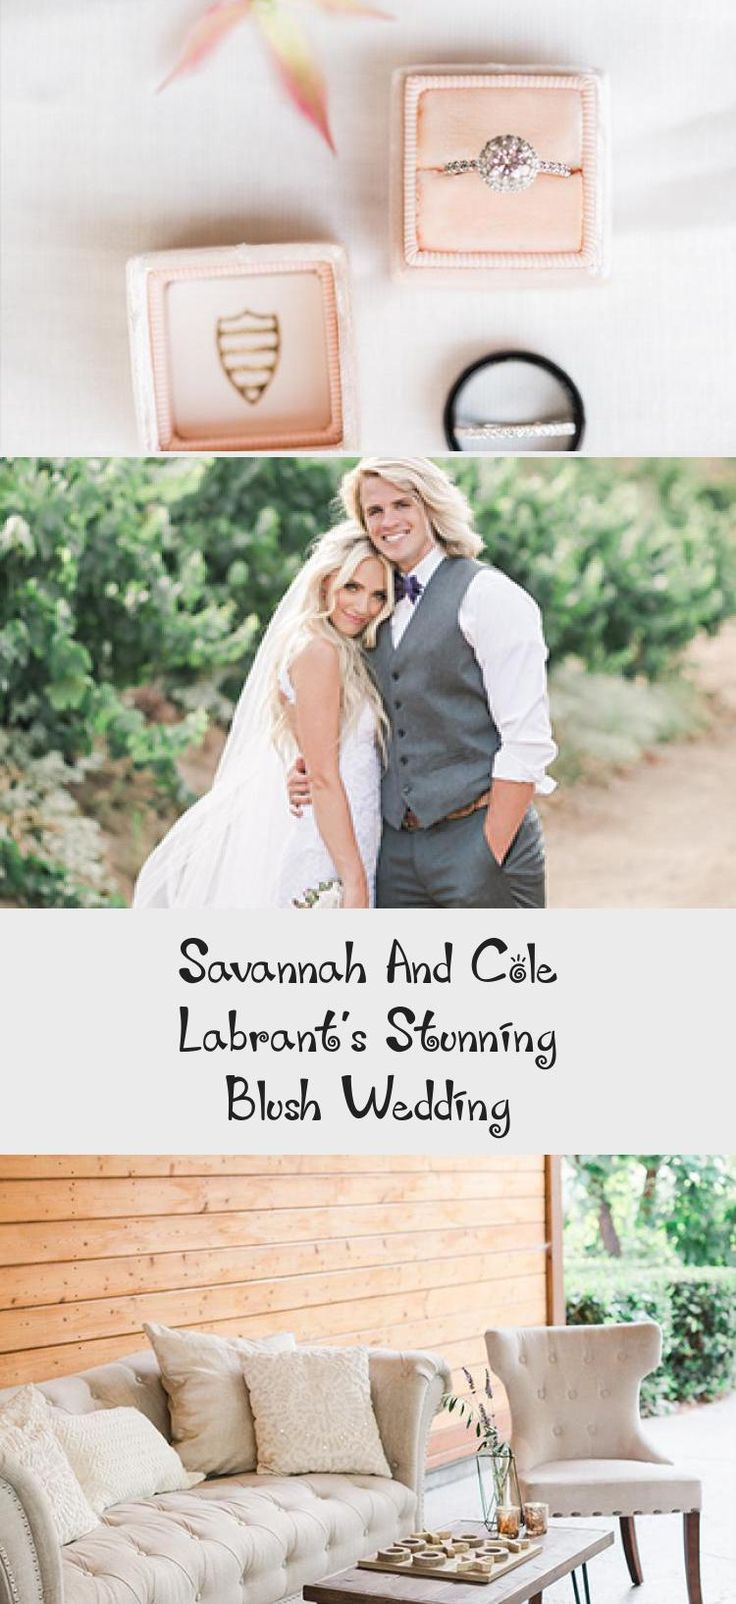 Savannah and Cole LaBrant's Stunning Blush Wedding - Inspired By This #BridesmaidDressesLace #SilverBridesmaidDresses #BridesmaidDresses2018 #BridesmaidDresses2019 #BurgundyBridesmaidDresses